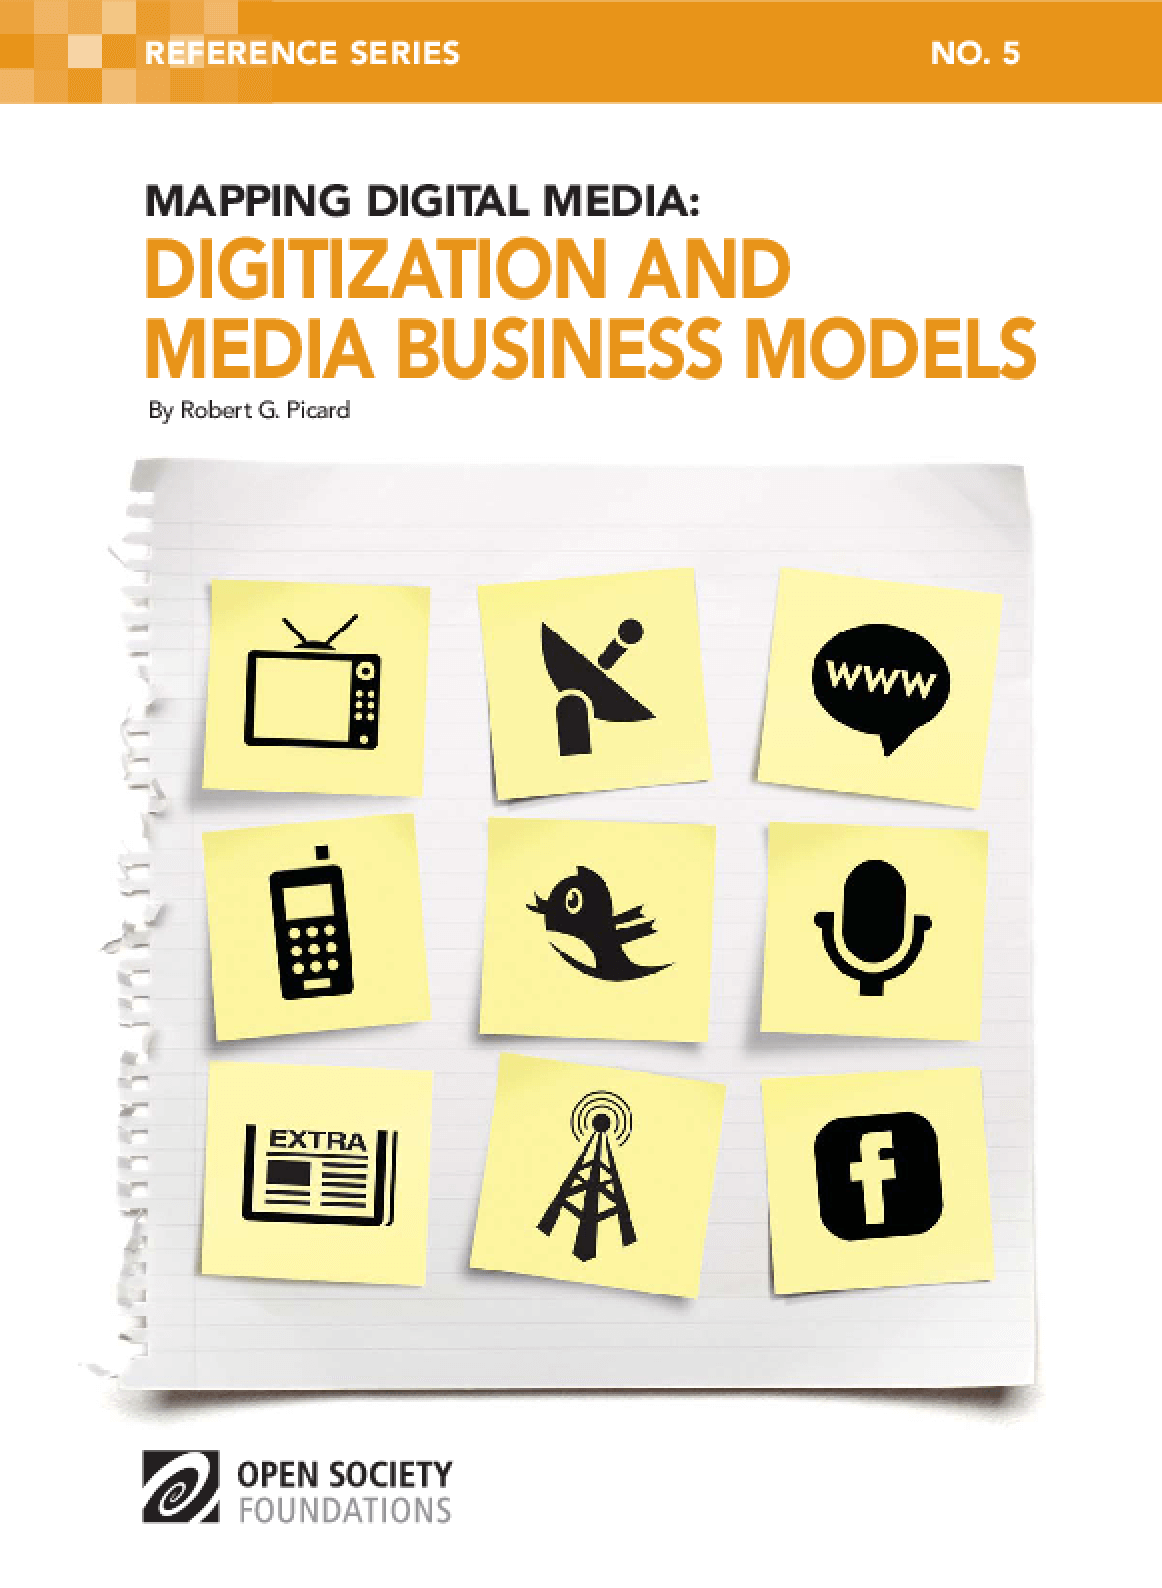 Mapping Digital Media: Digitization and Media Business Models